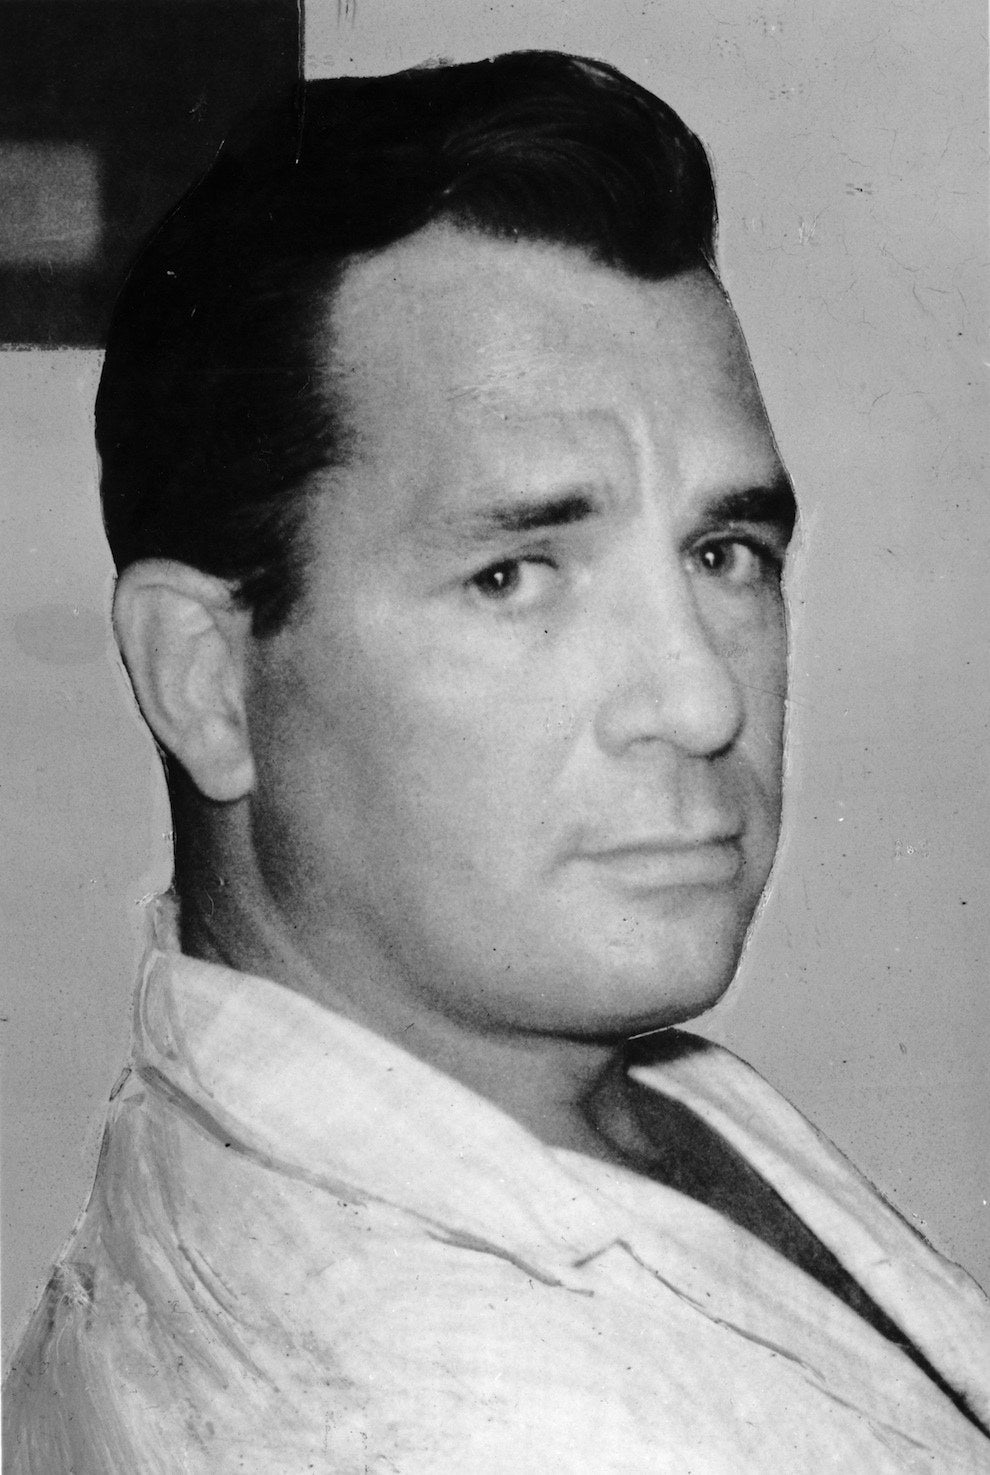 a biography and life work of jack kerouac an american writer Jack kerouac facts: jean-louis lebris de (jack) kerouac (1922-1969), american writer, experimented with spontaneous autobiographical fiction chronicling his travels into the american west.